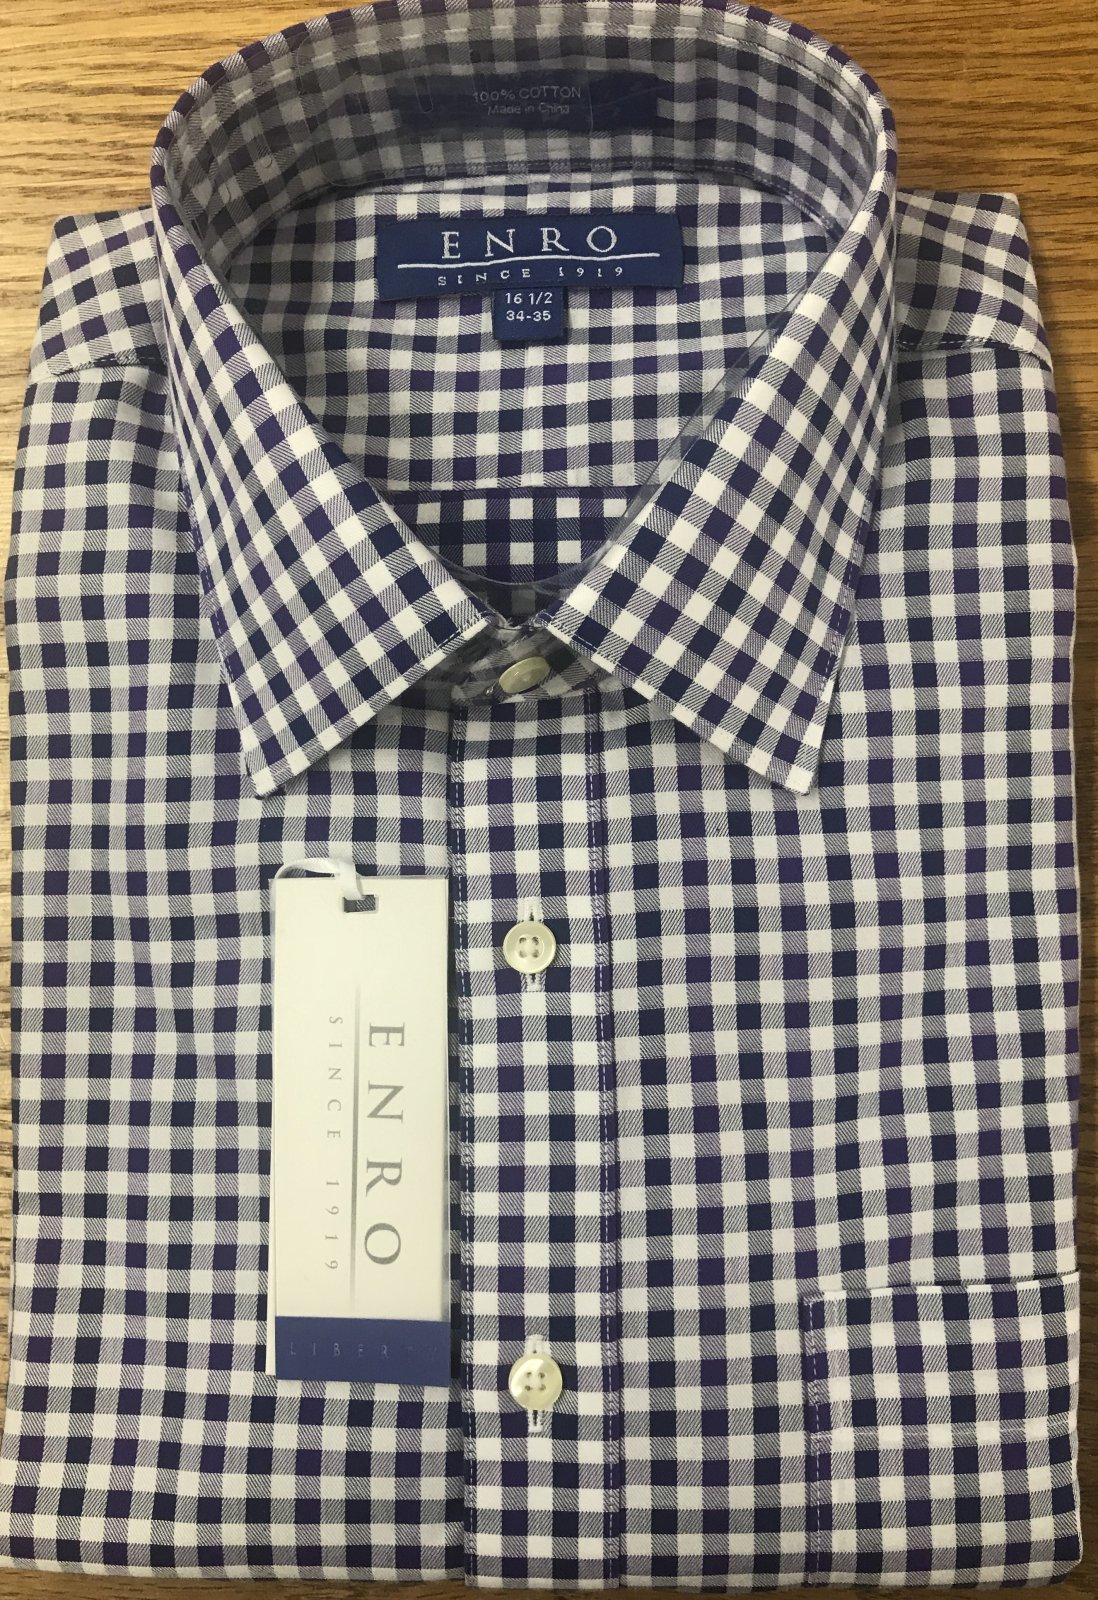 Enro LS Dress Shirt 153553